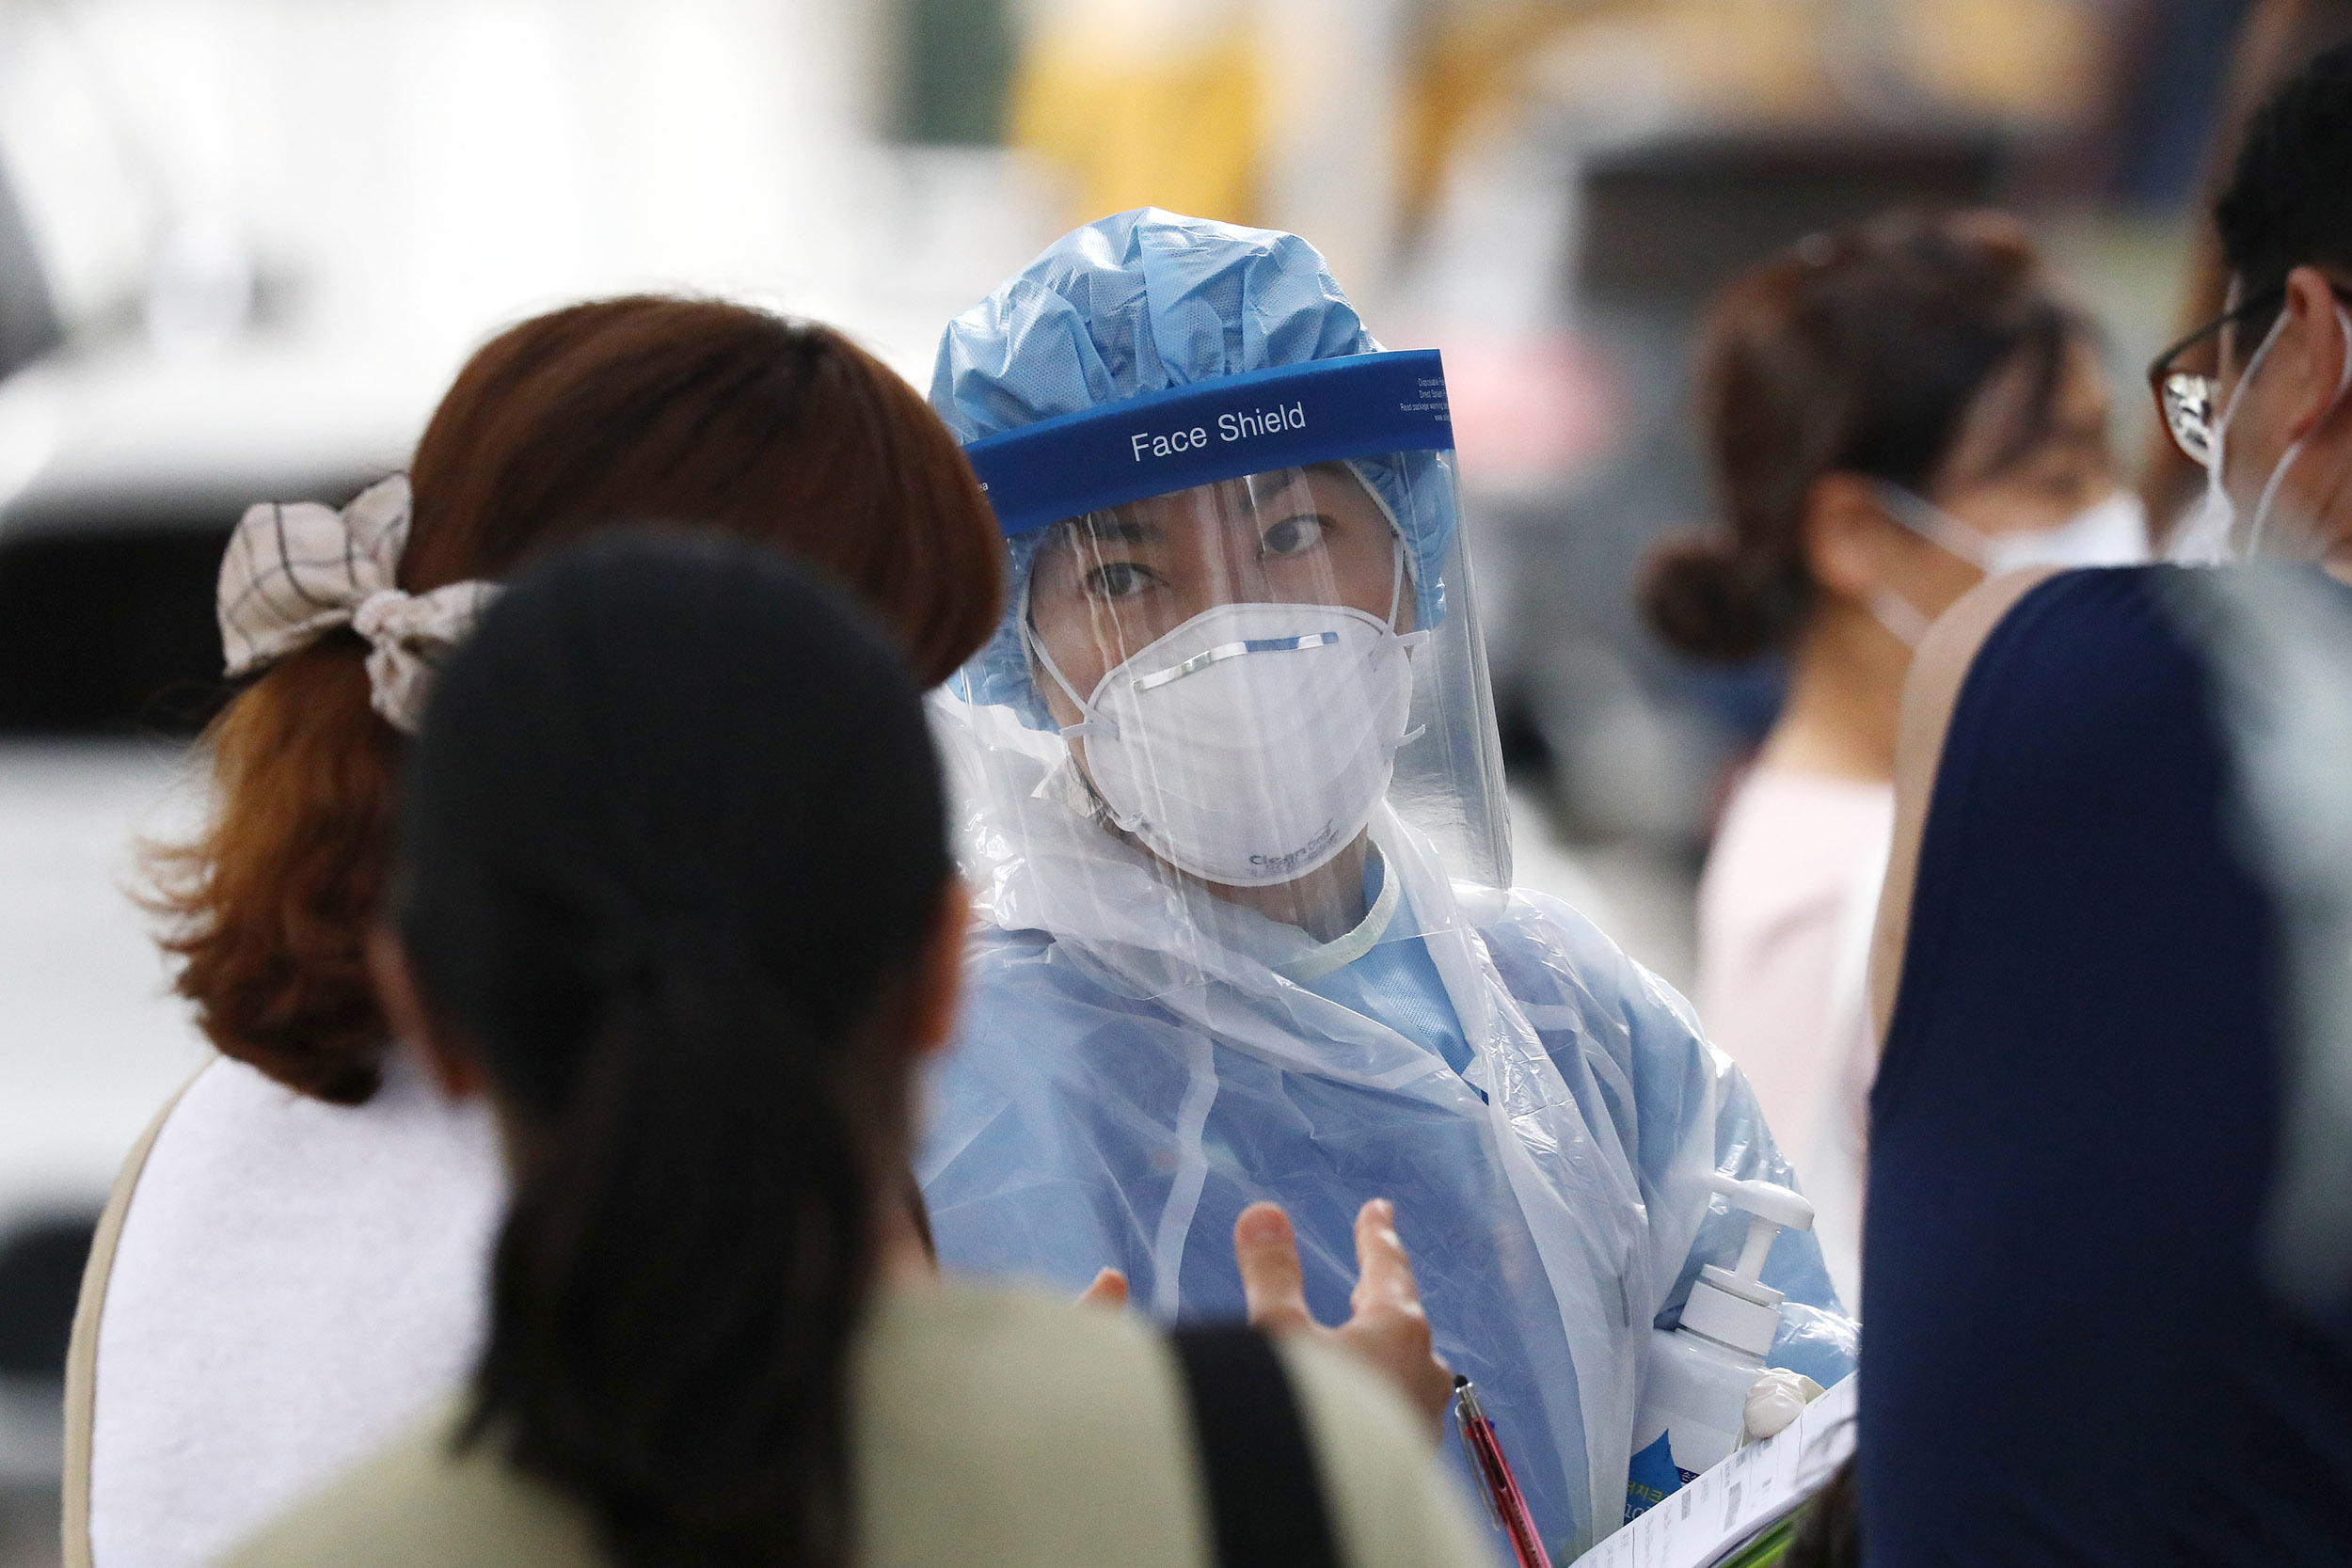 A medical worker screens for Covid-19 at a testing facility on August 26, in Seoul, South Korea.